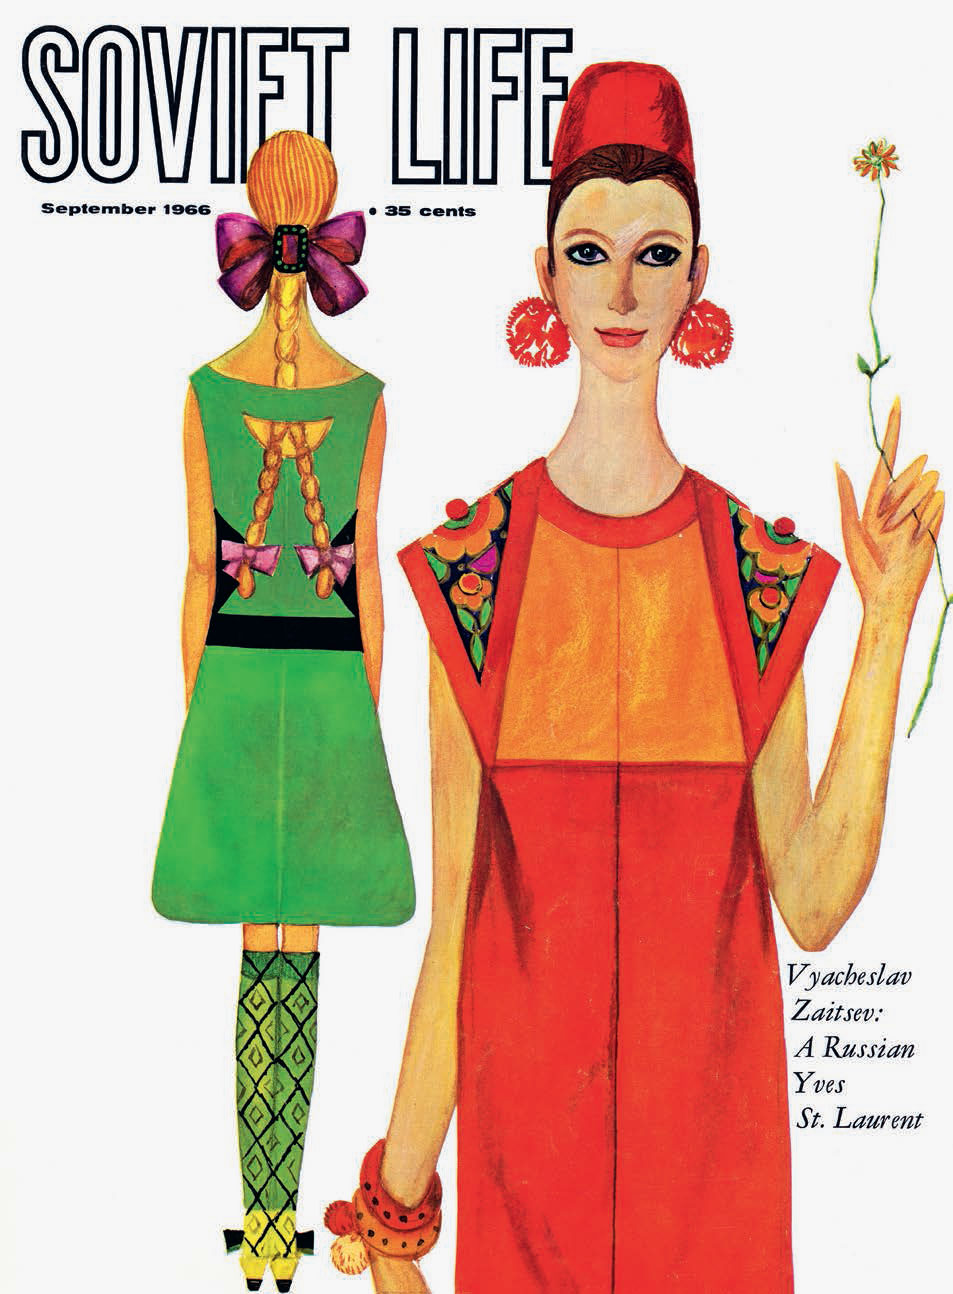 Soviet Life magazine, September 1966. As reproduced in Designed in the USSR